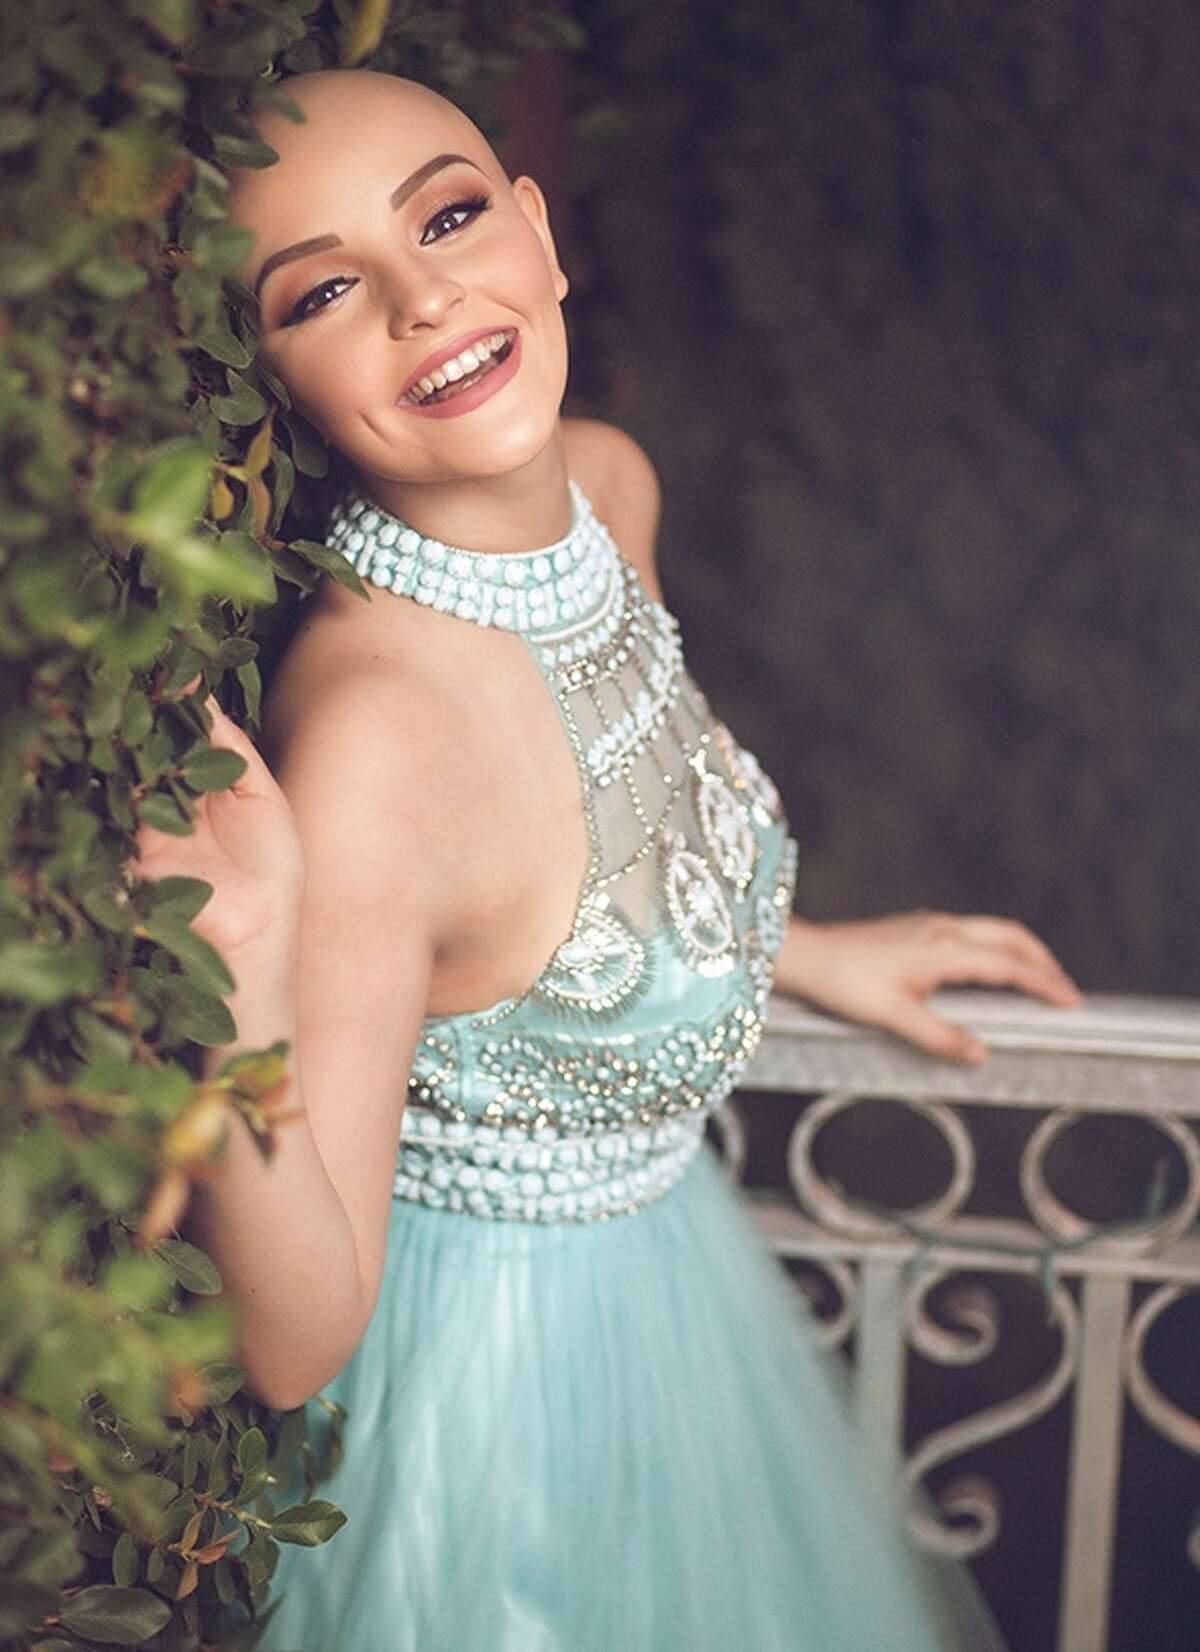 McAllen native Andrea Sierra Salazar, 17, worked with photographer Gerardo Garmendia for a photoshoot in which she chose to not wear a wig to celebrate the fact that cancer does not stop her from being a